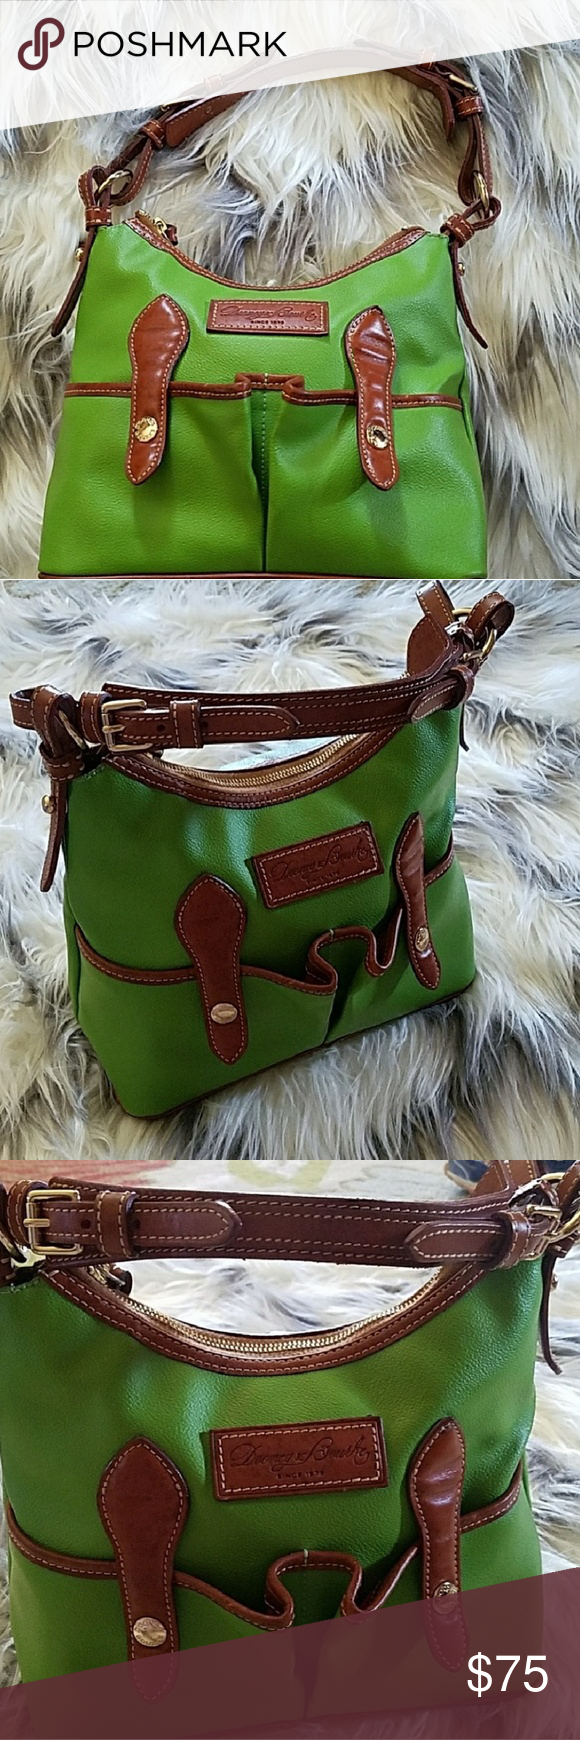 DOONEY & BOURKE LUCY KELLY GREEN SHOULDER BAG Green